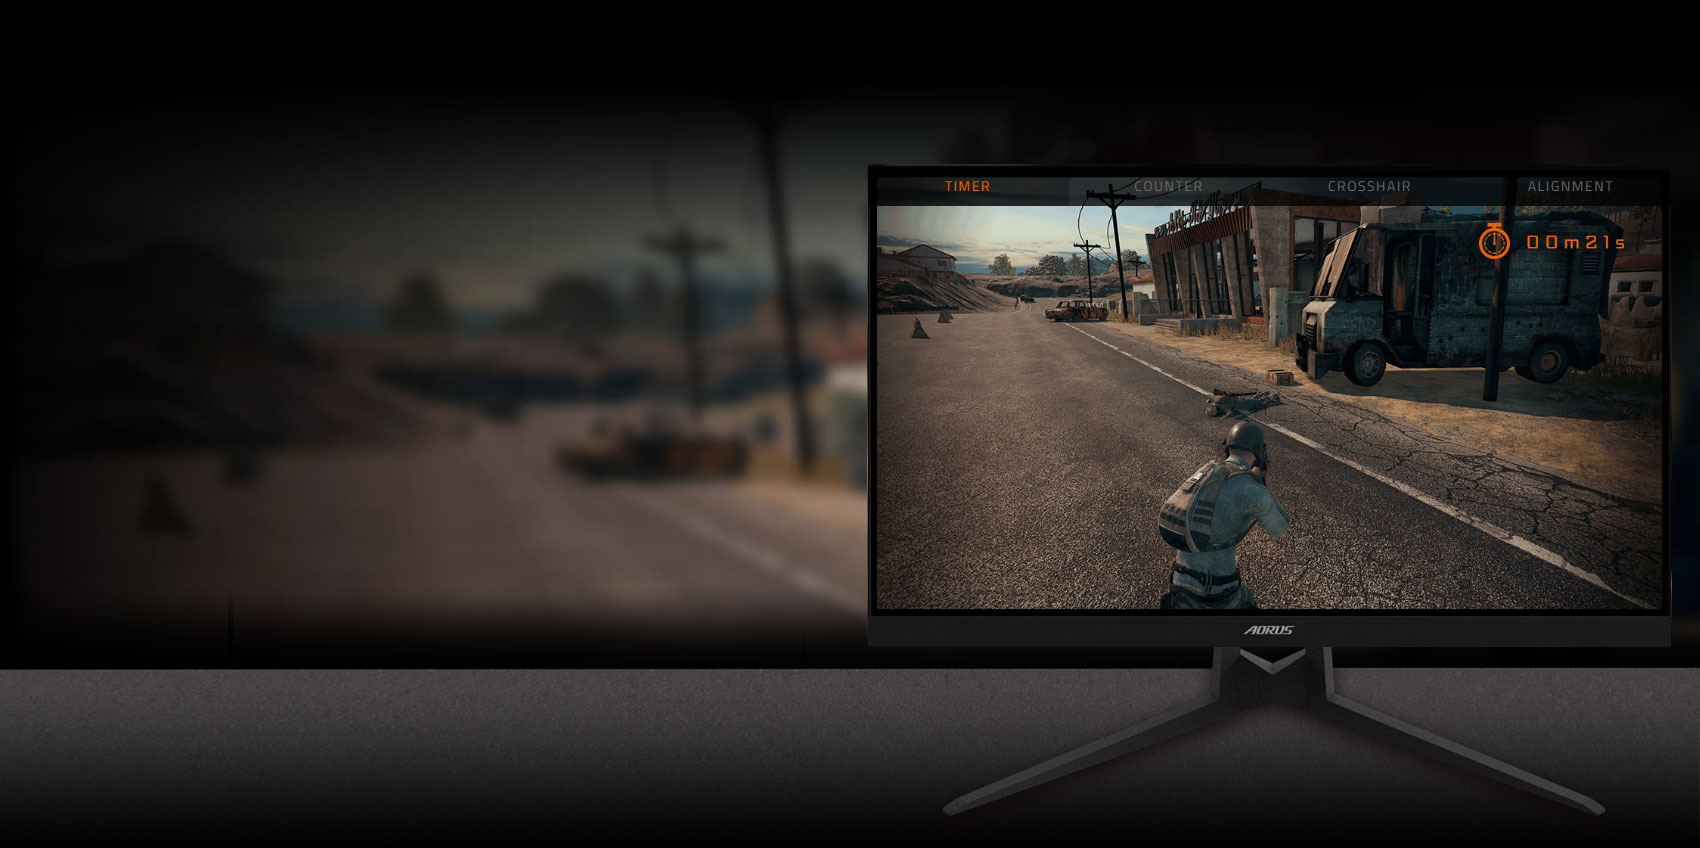 GIGABYTE AORUS FI27Q 27 Monitor Angled to the left, showing the effect of gameassist in your game.